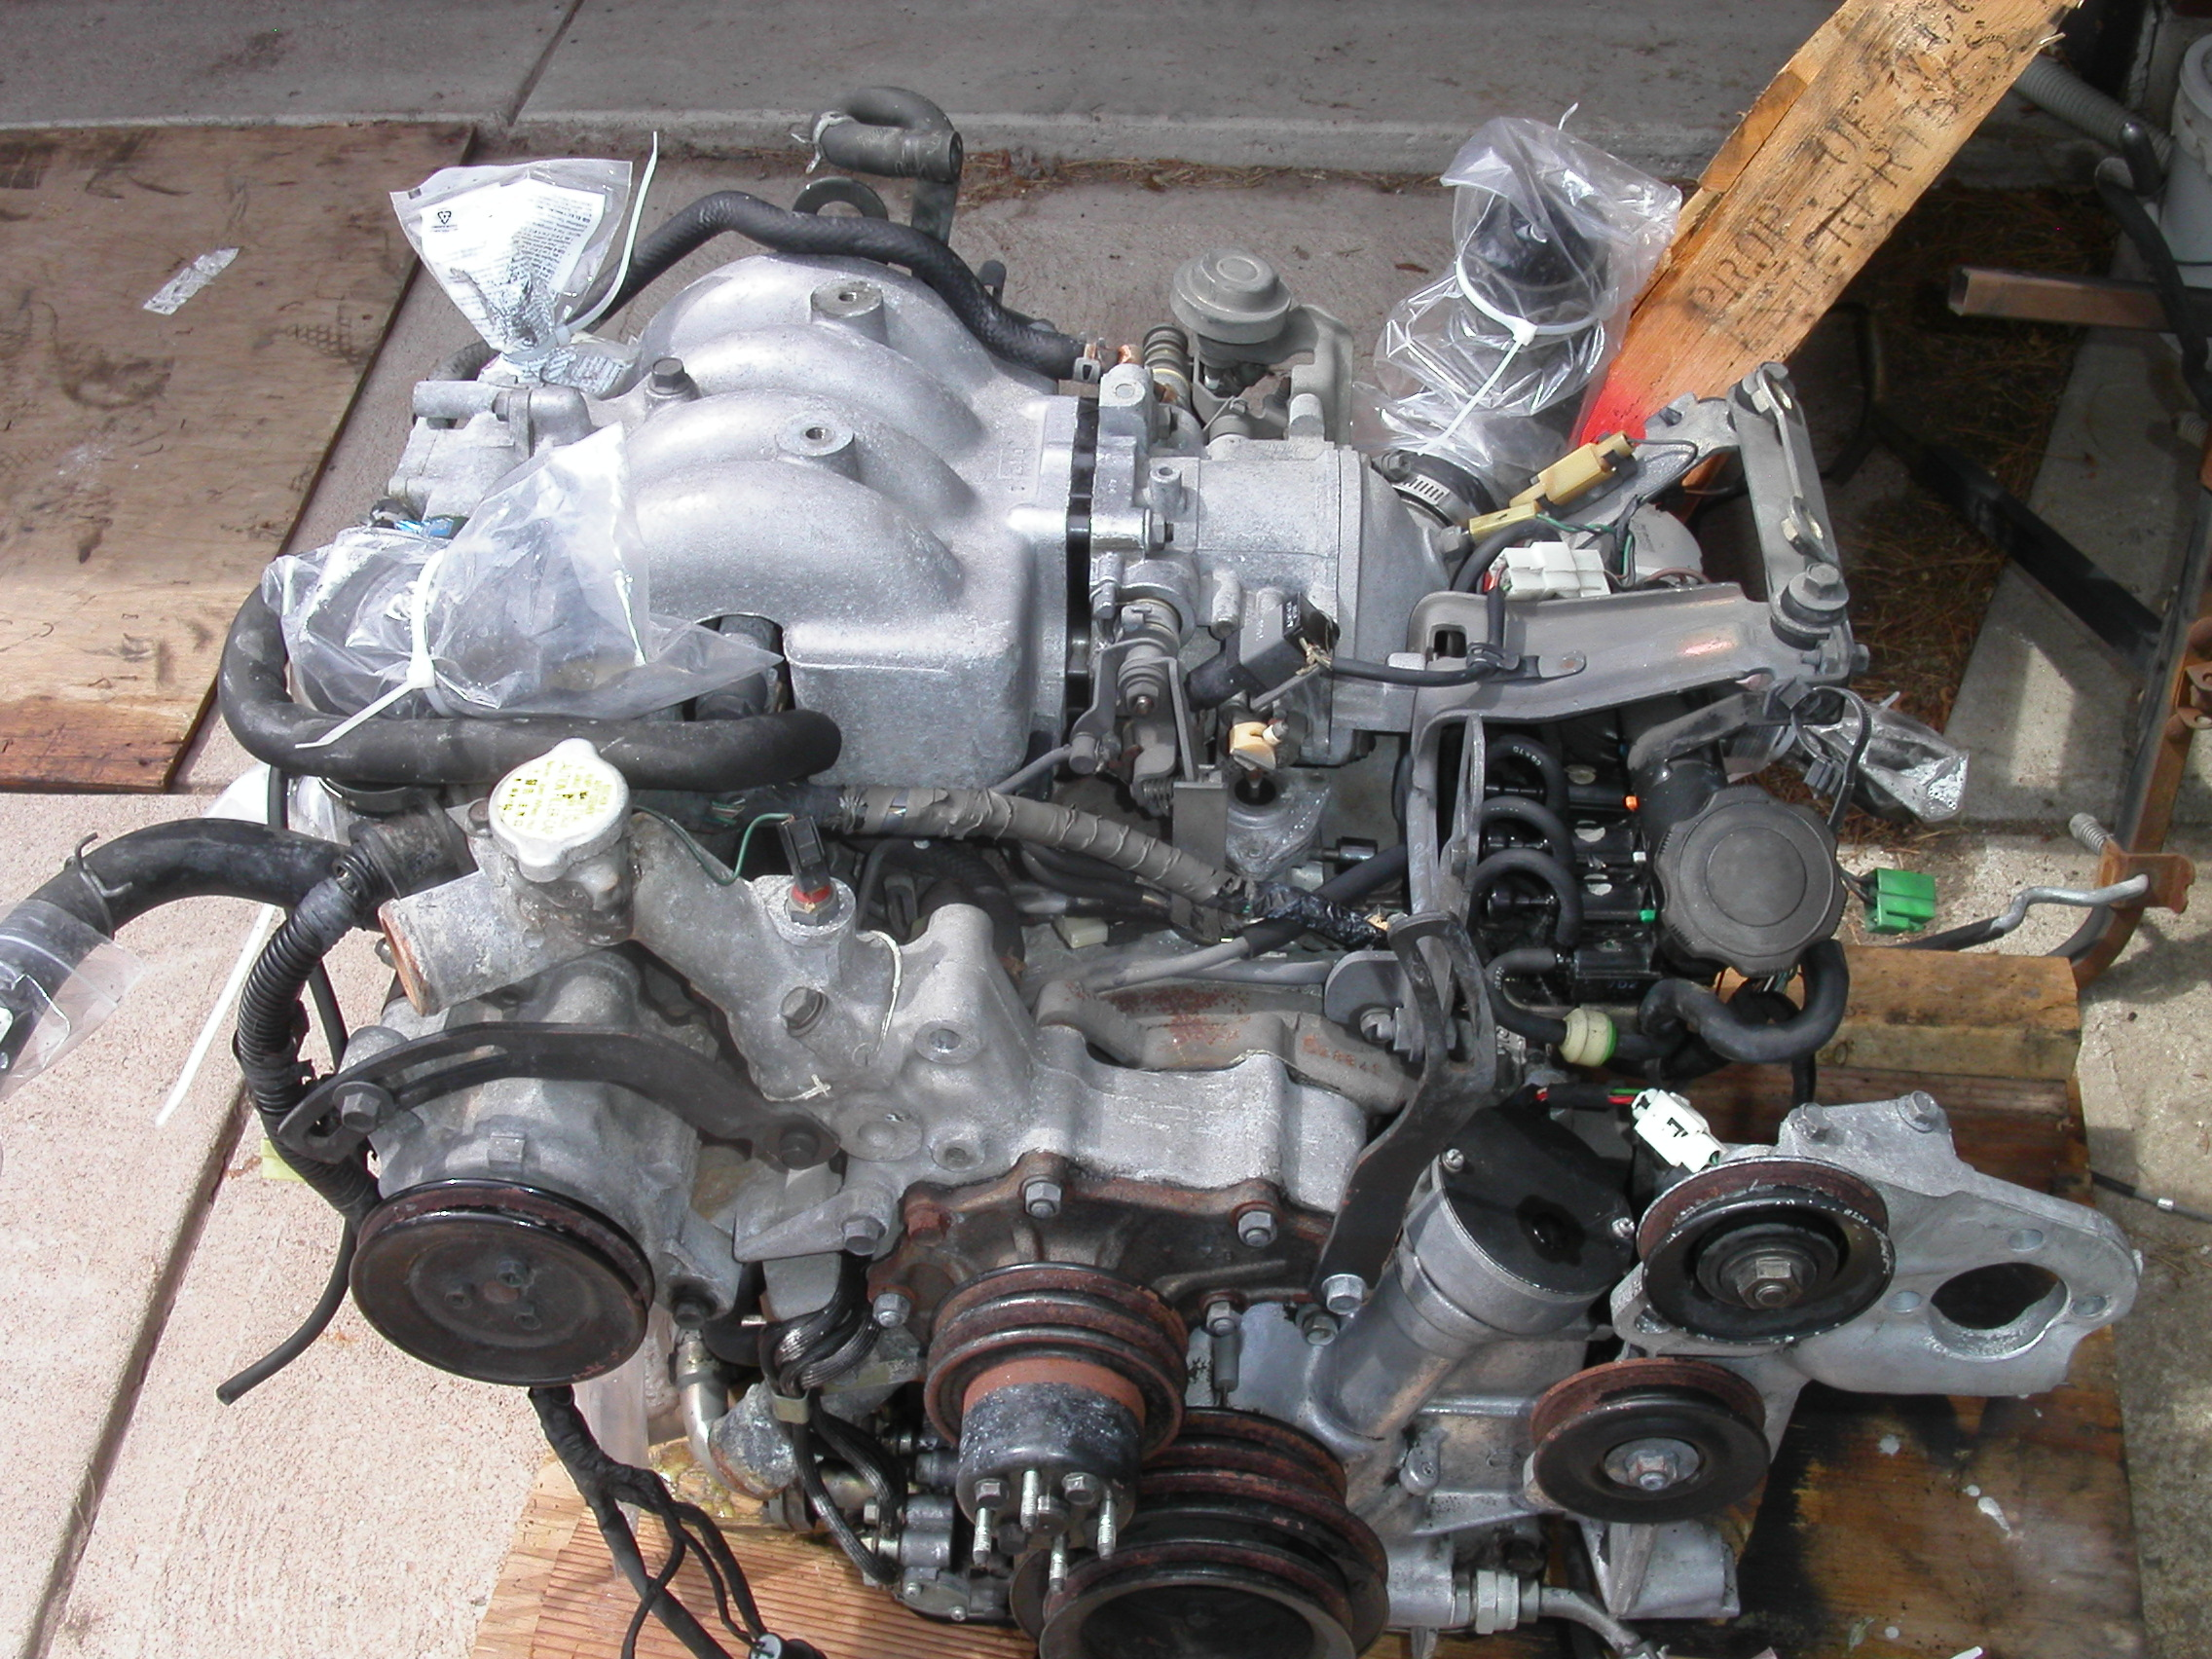 Pathfinder Turbo >> RX7 Turbo II Project For Sale | S4 Long-Block Engine